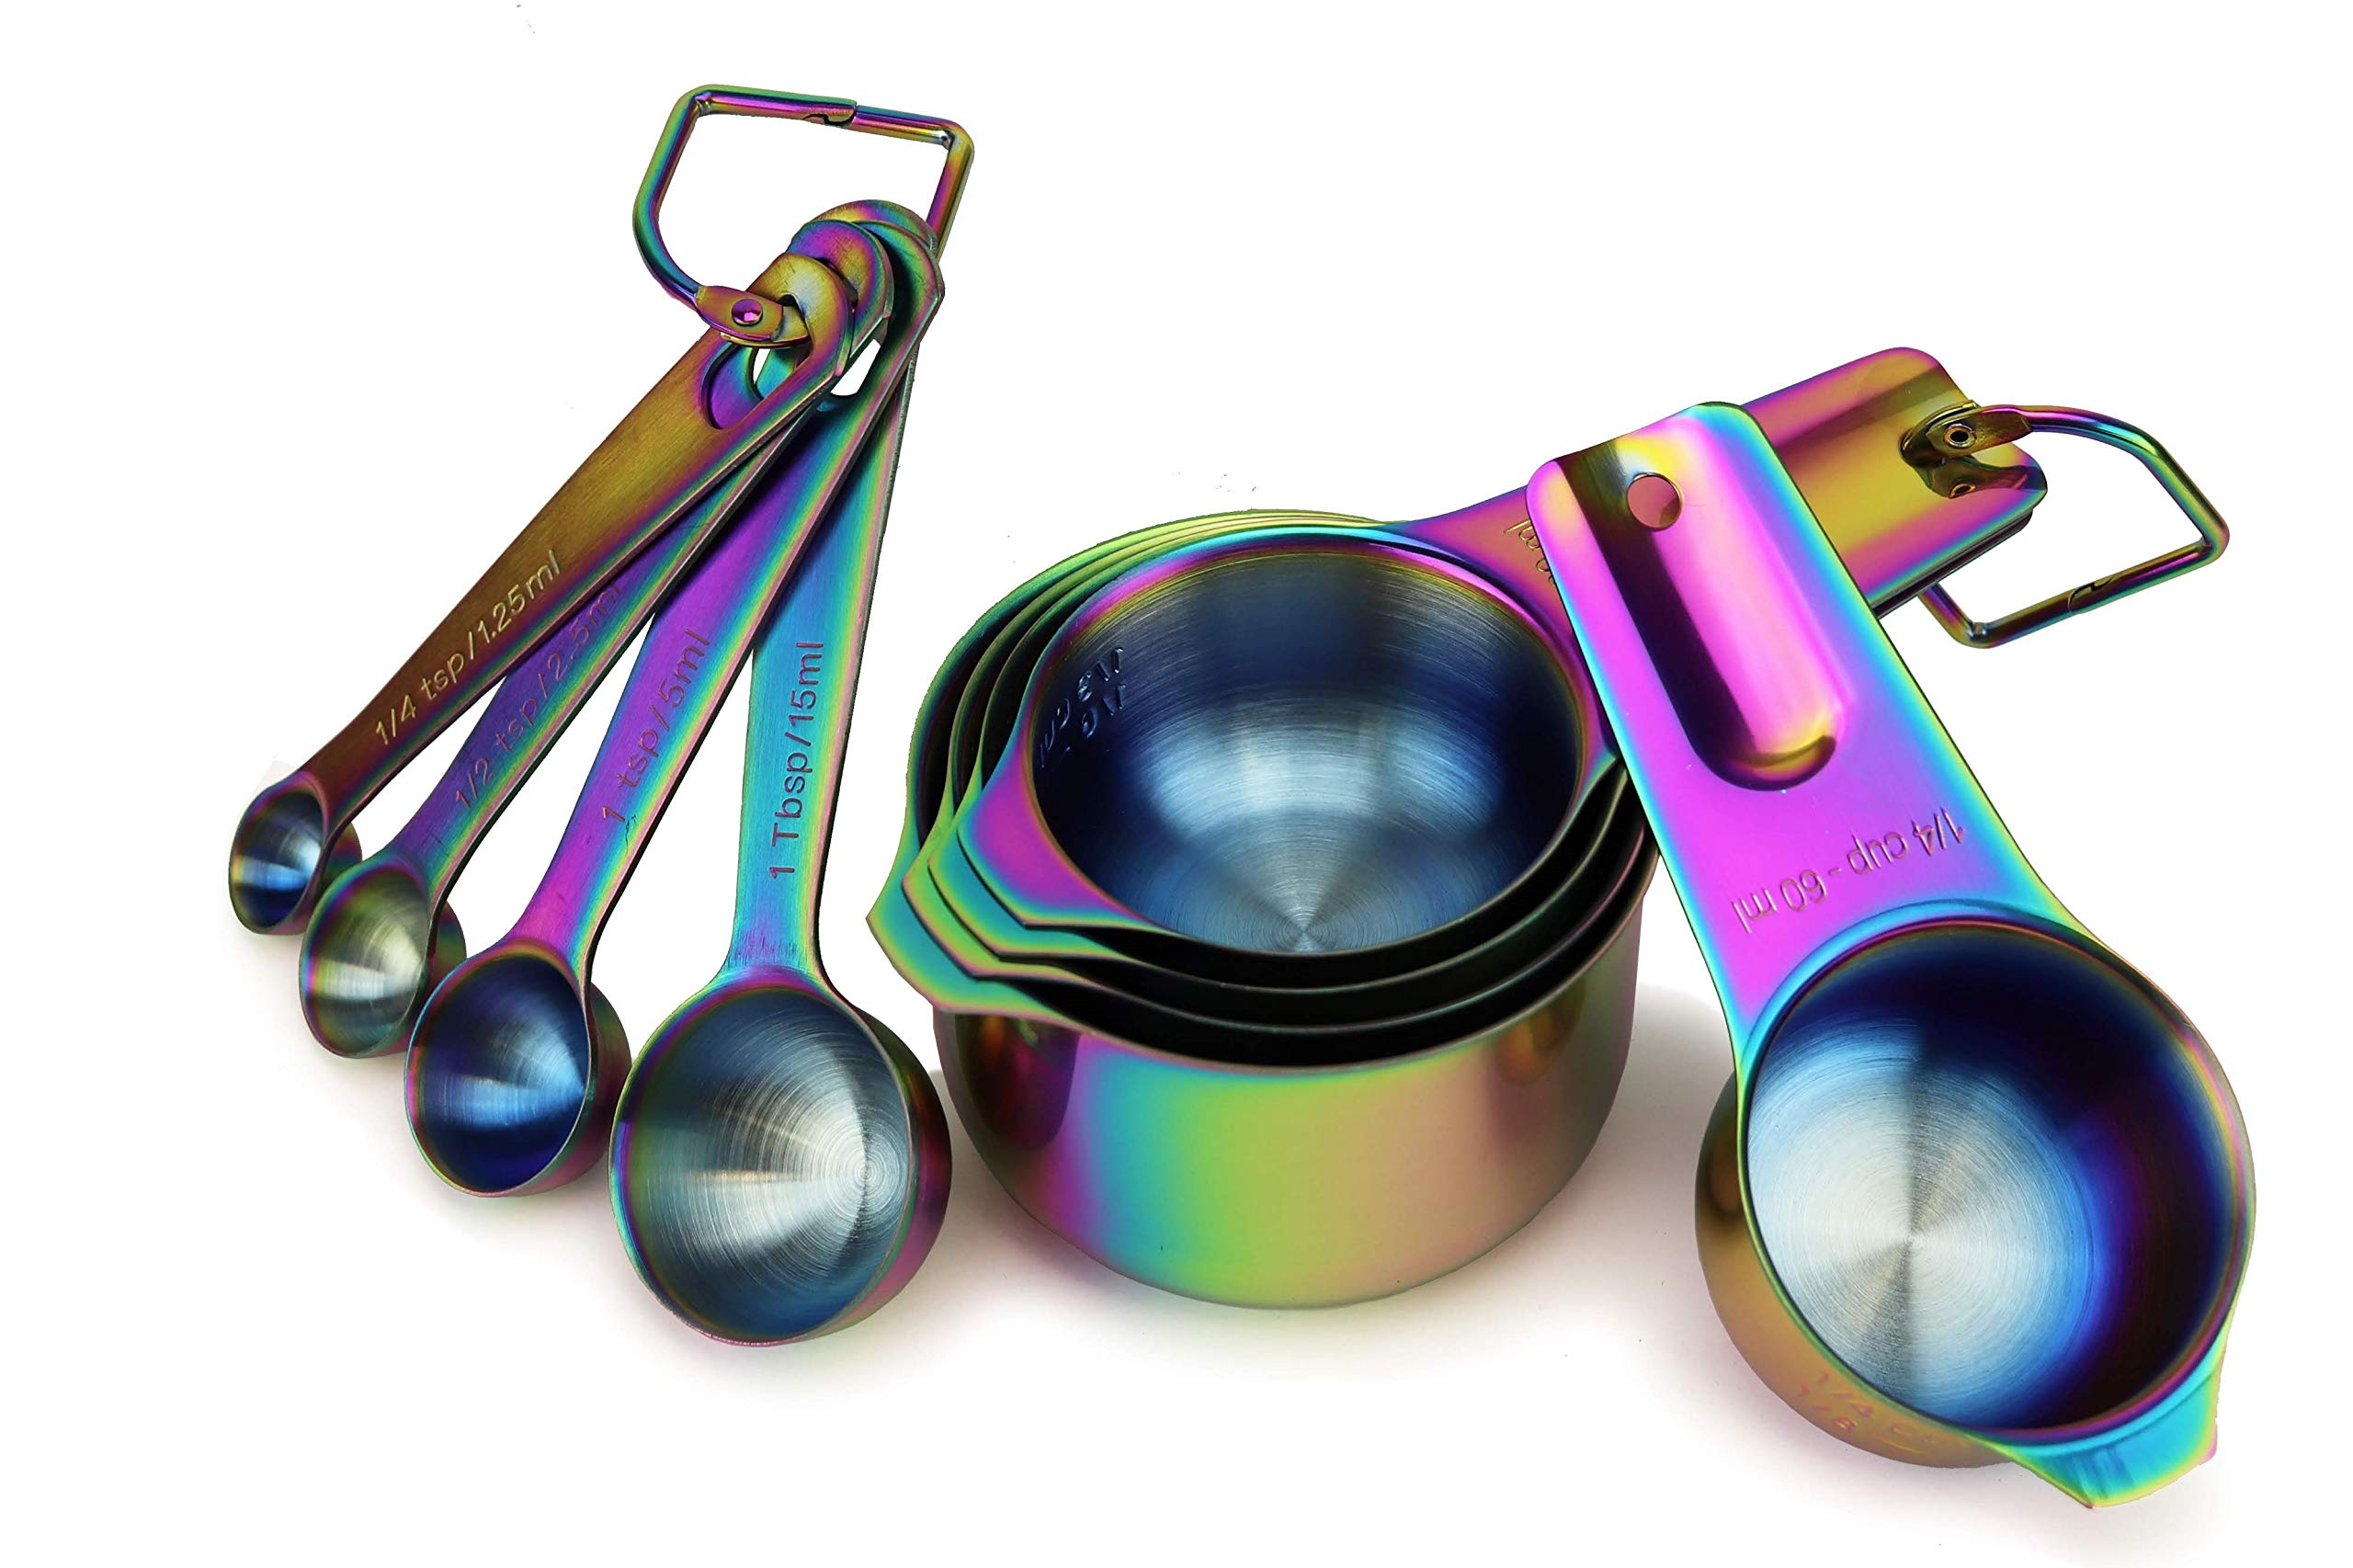 9 Piece Stainless Steel Rainbow/Iridescent/Oil Slick Measuring Cup and Spoon Set by ColorMeHome by ColorMeHome